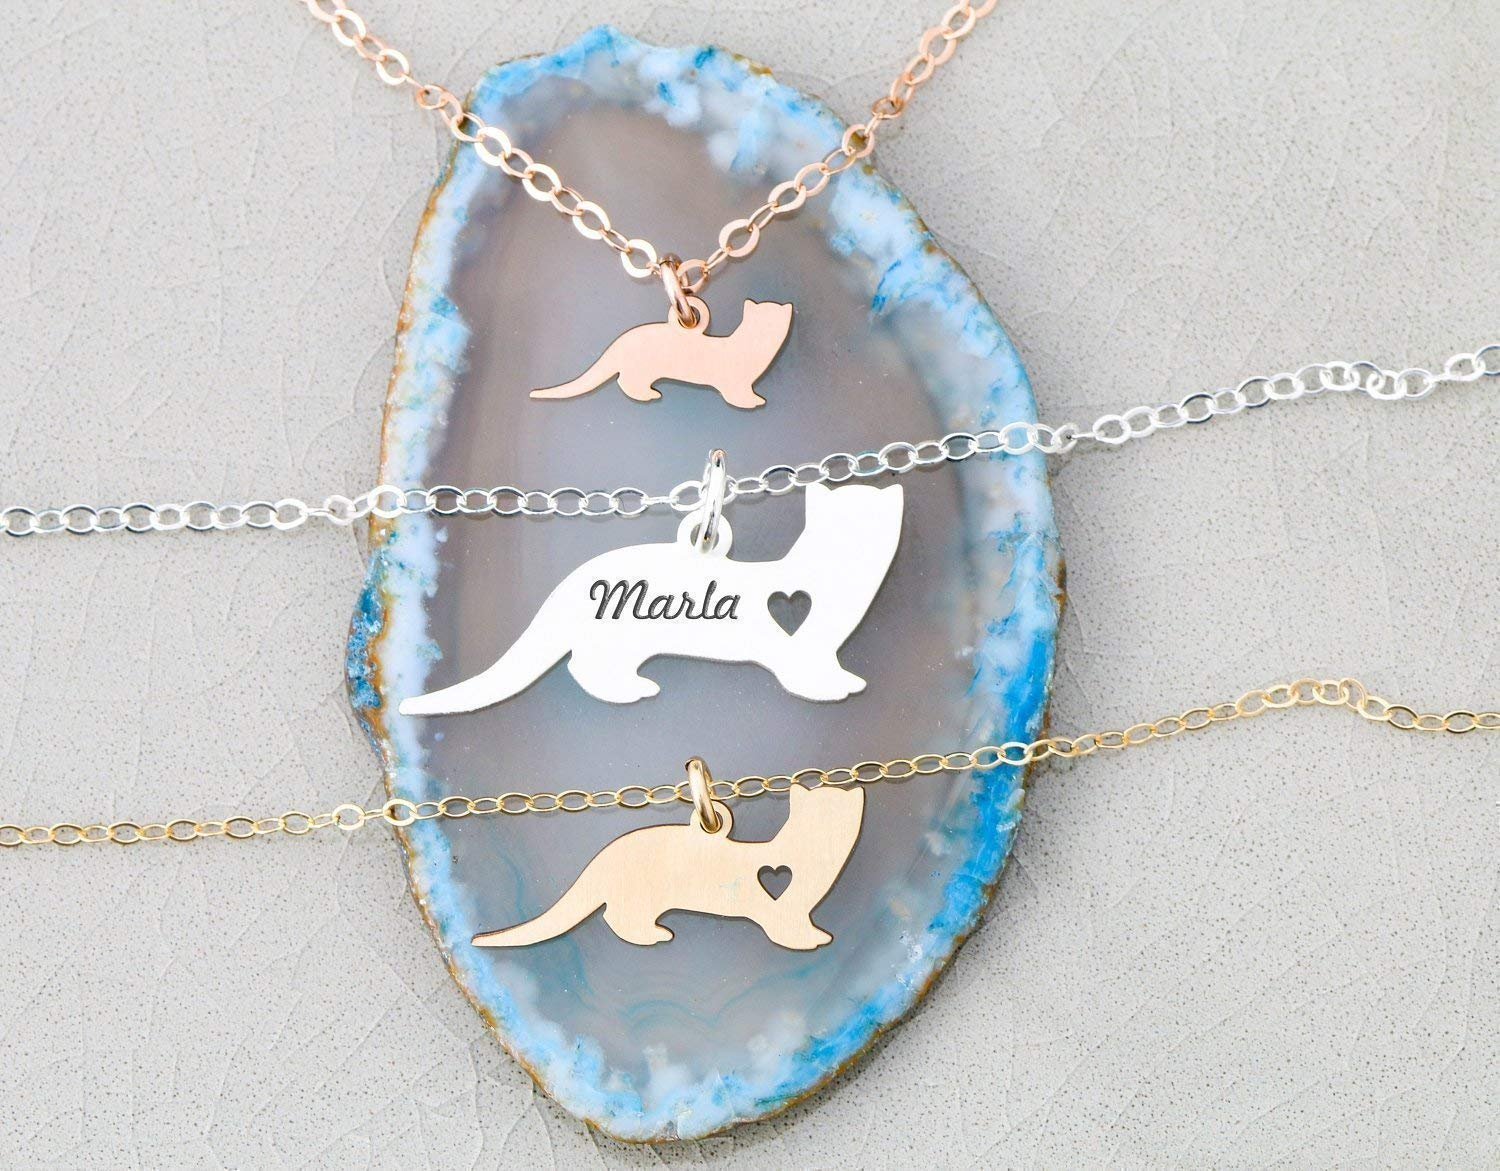 a9c8dc8f6c8e9 Ferret Necklace - Weasel - IBD - Personalize Name Date - Pendant Size  Options - 935 Sterling Silver 14K Rose Gold Filled